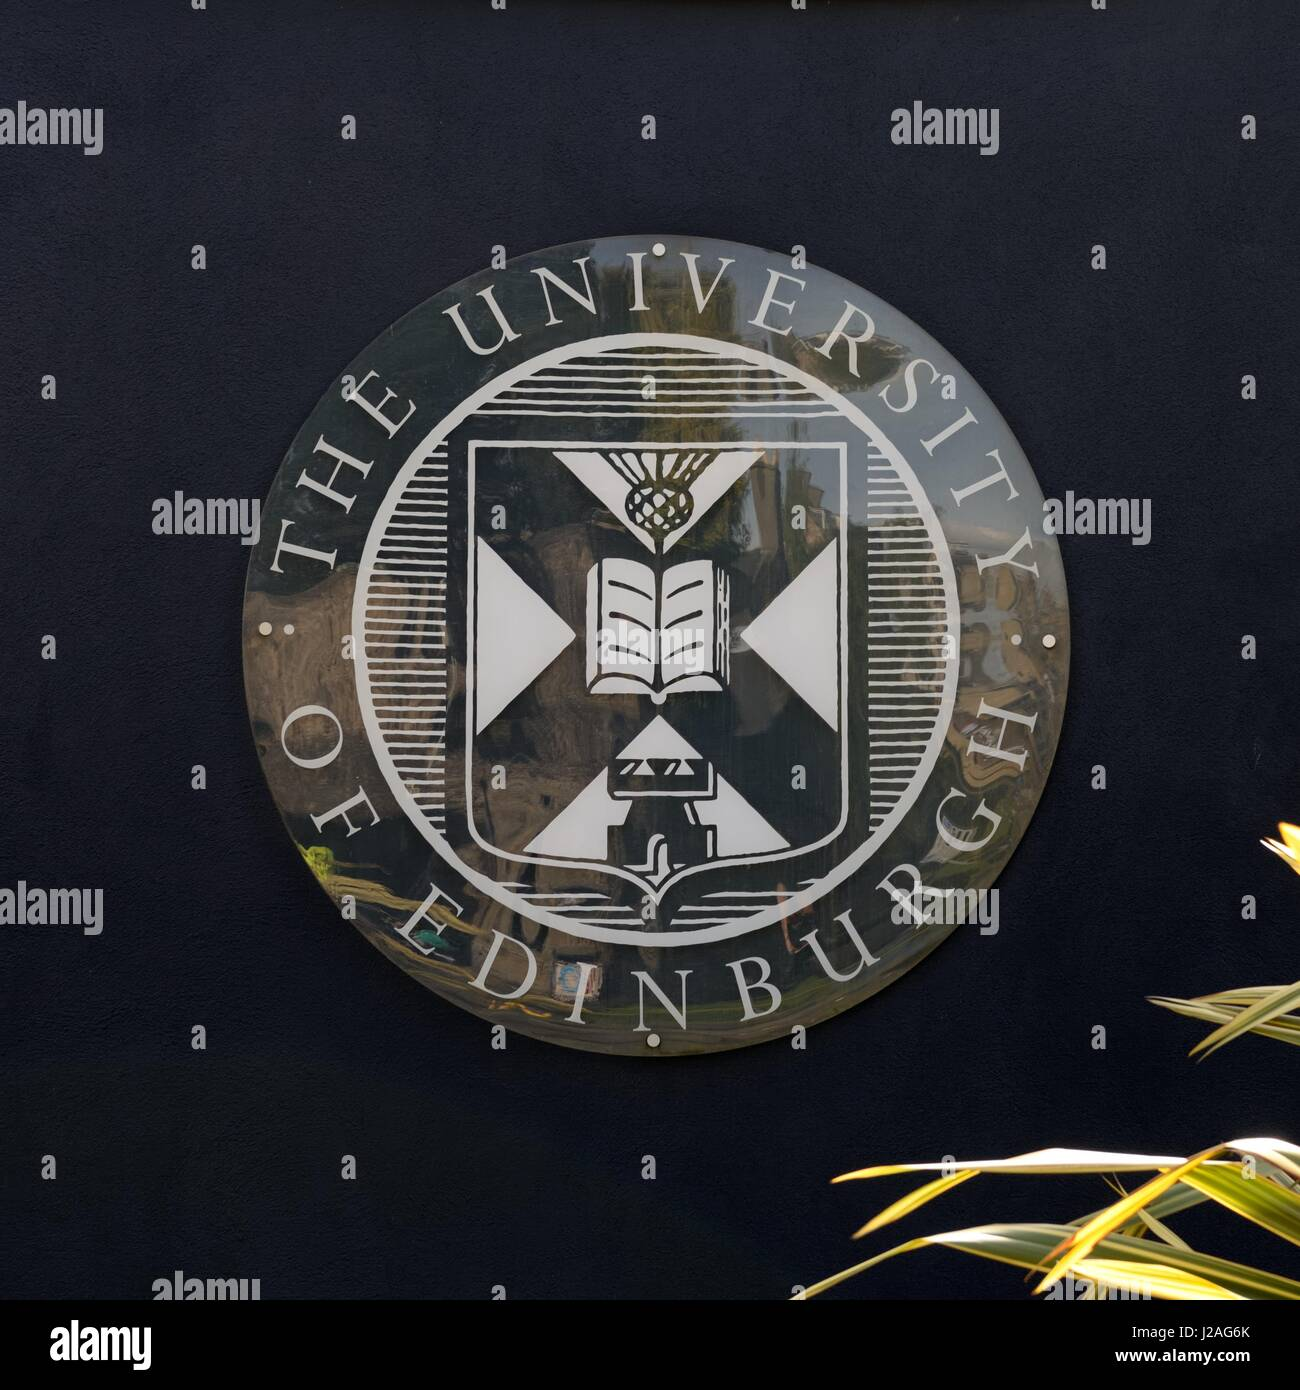 Glass plate on a wall showing the coat of arms of Edinburgh University, Scotland, UK - Stock Image